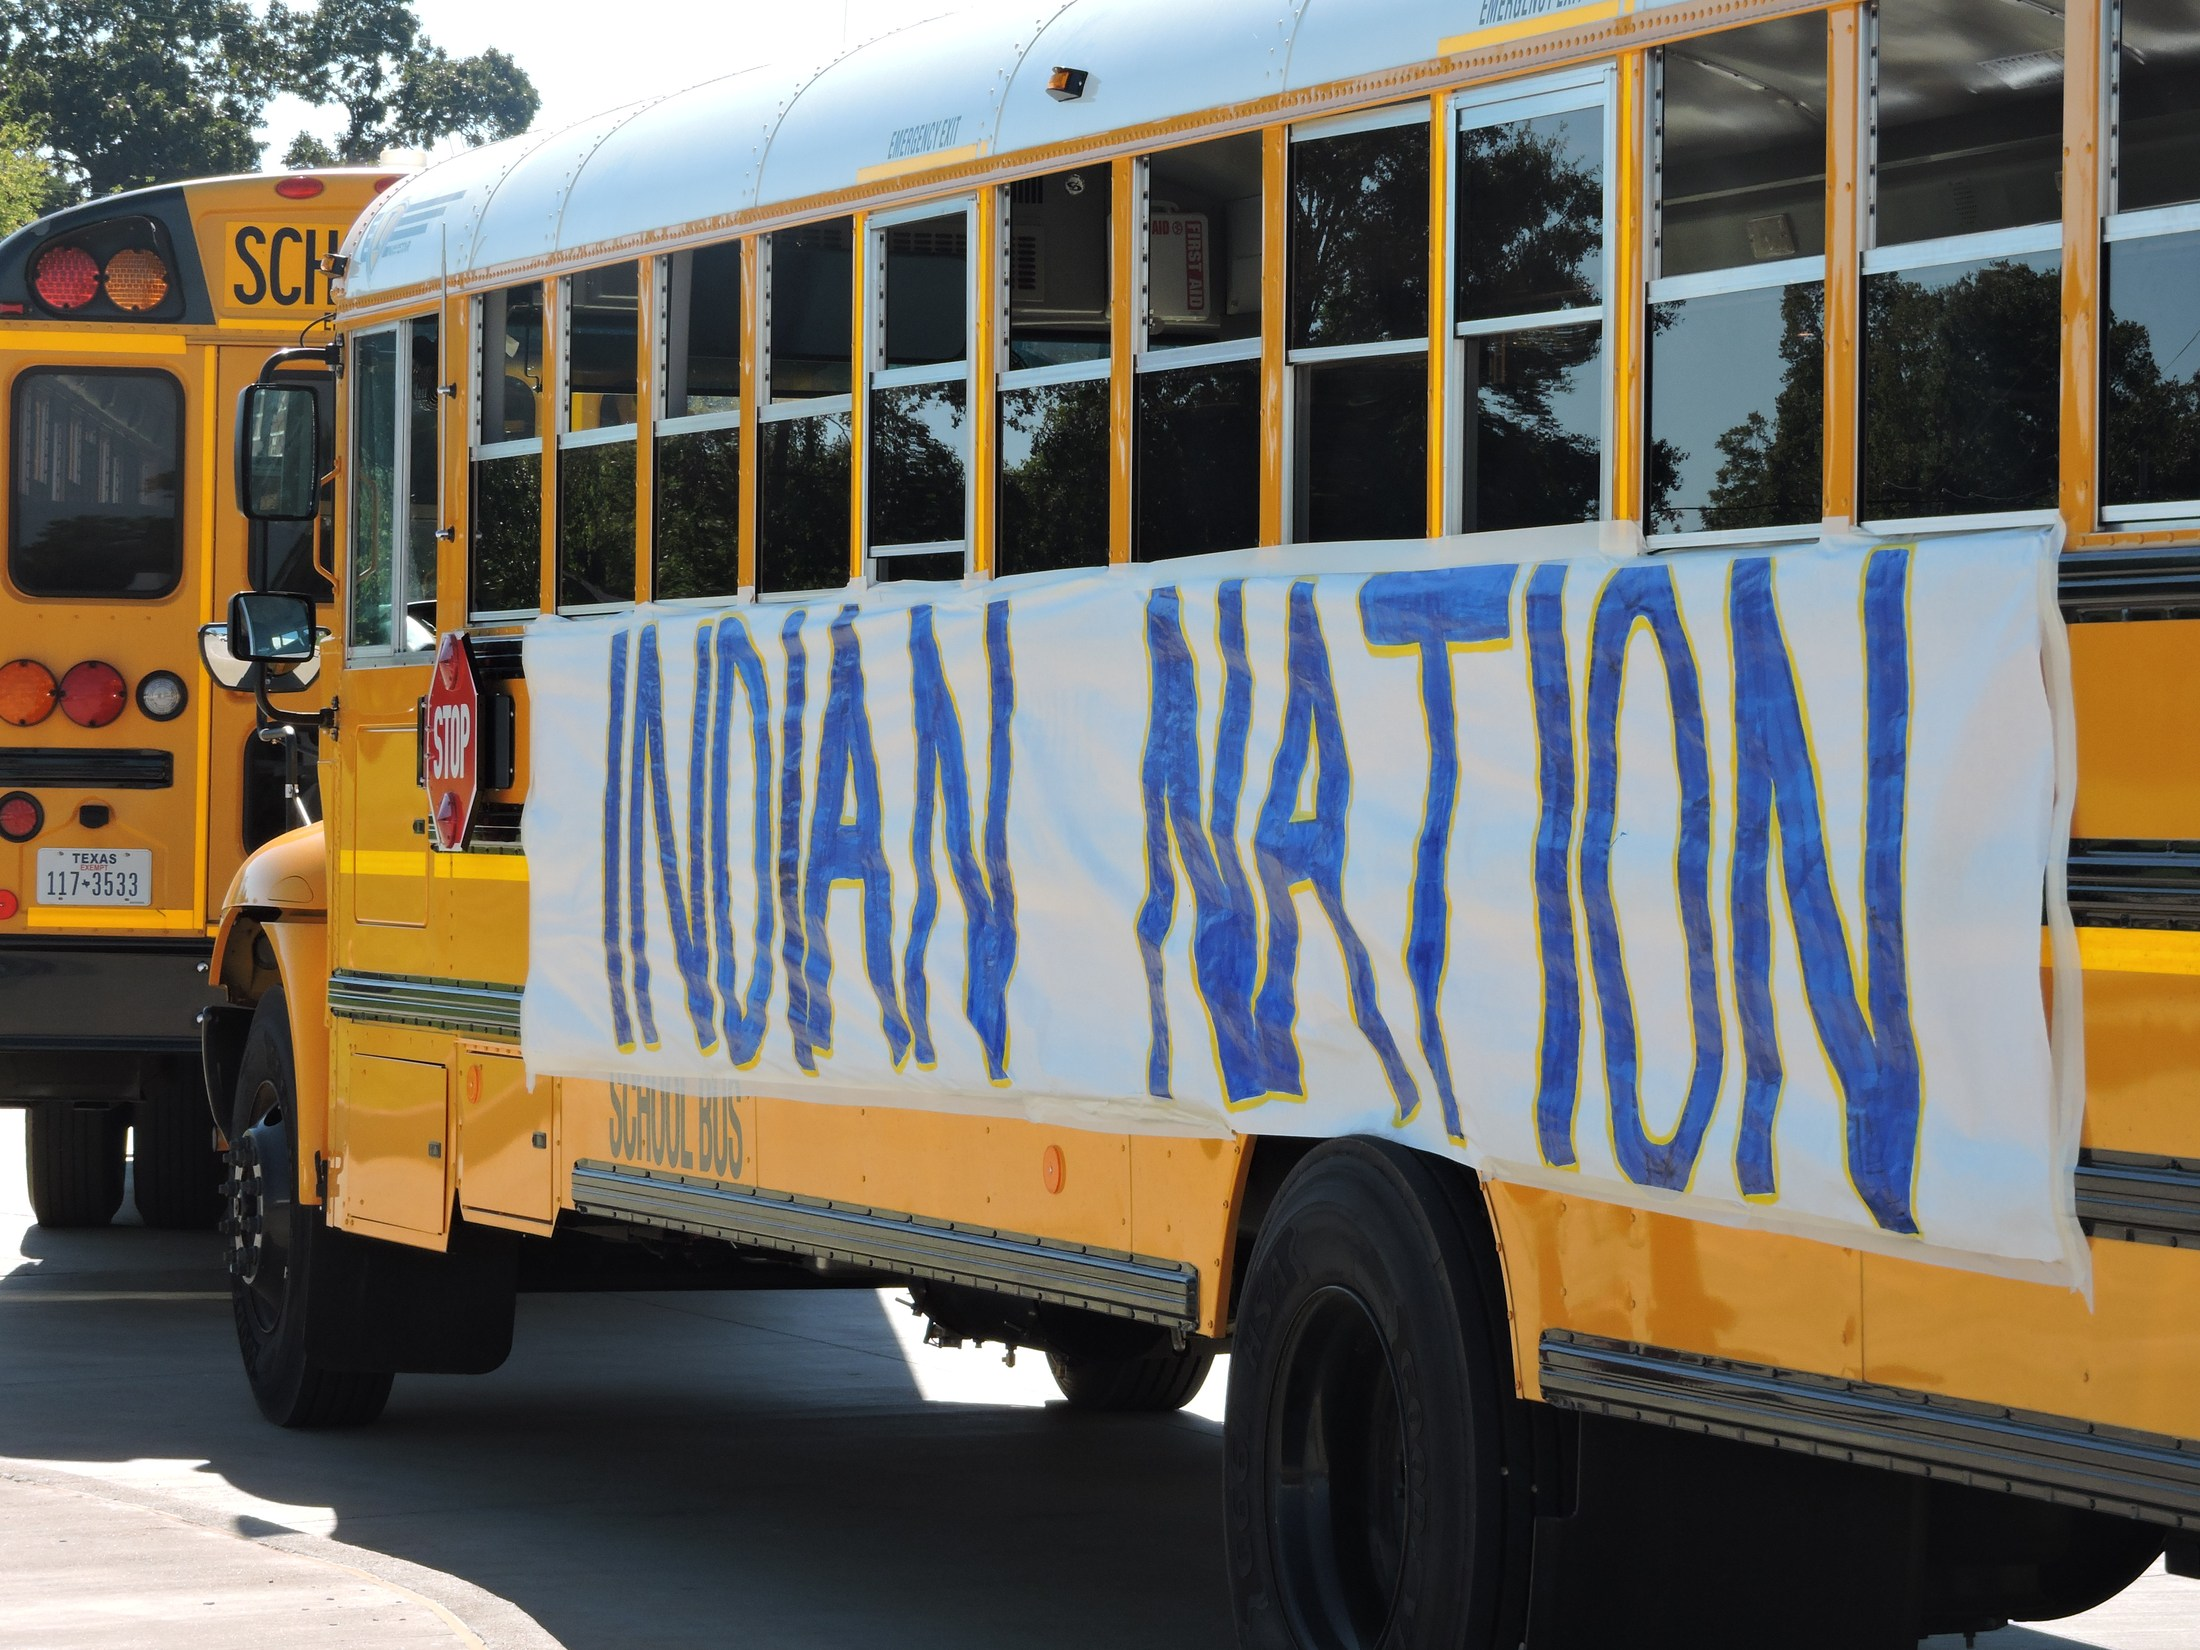 School bus with Indian Nation sign